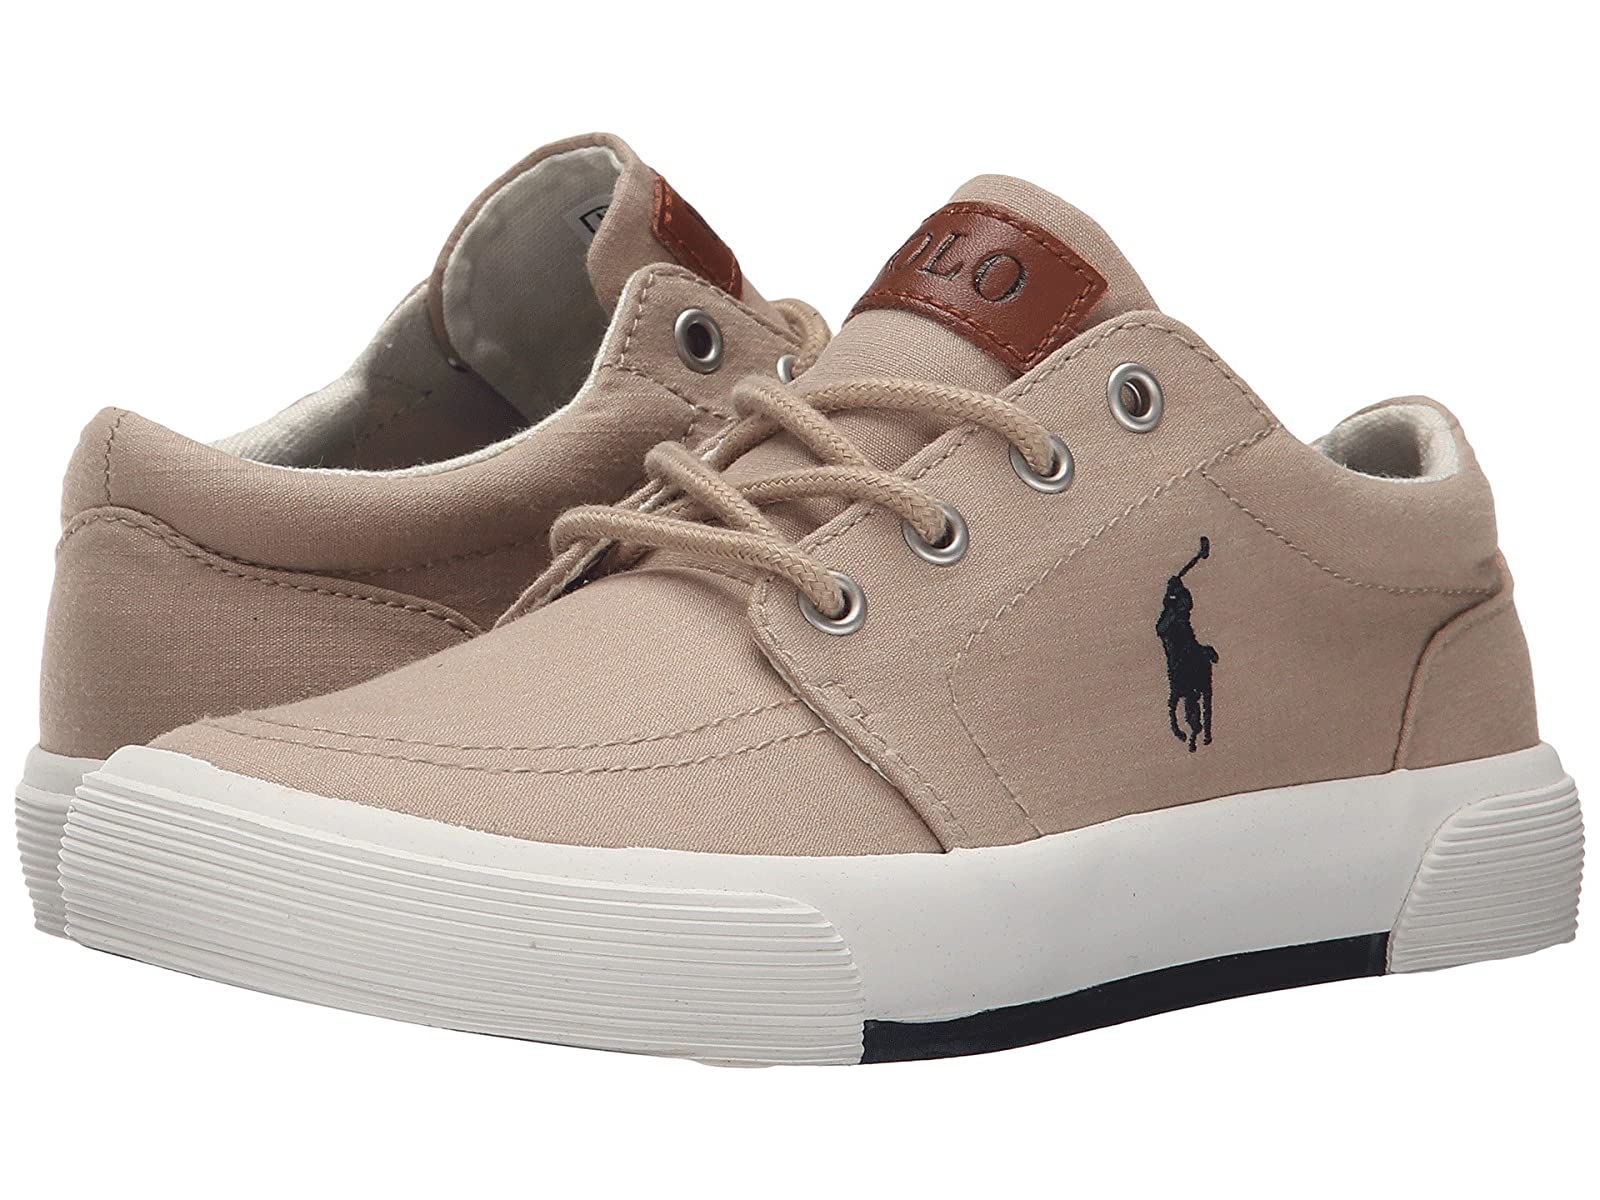 Polo Ralph Lauren Kids Faxon II (Little Kid)Atmospheric grades have affordable shoes